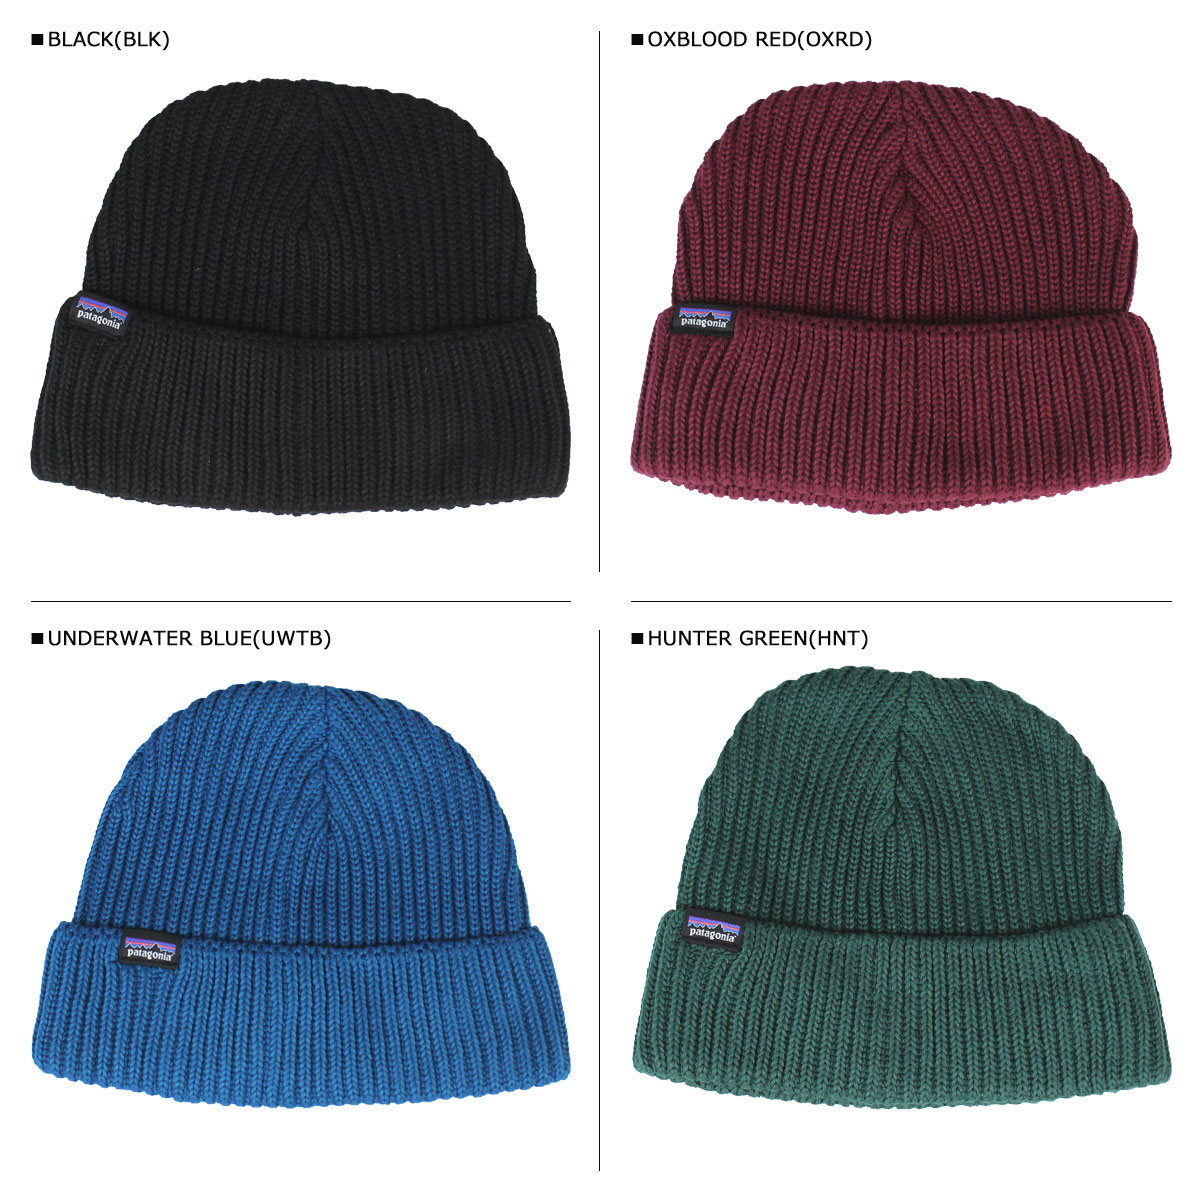 Patagonia Patagonia knitted Hat Beanie knit Cap FISHERMAN S ROLLED BEANIE  29105 men women 30797ec6a0f